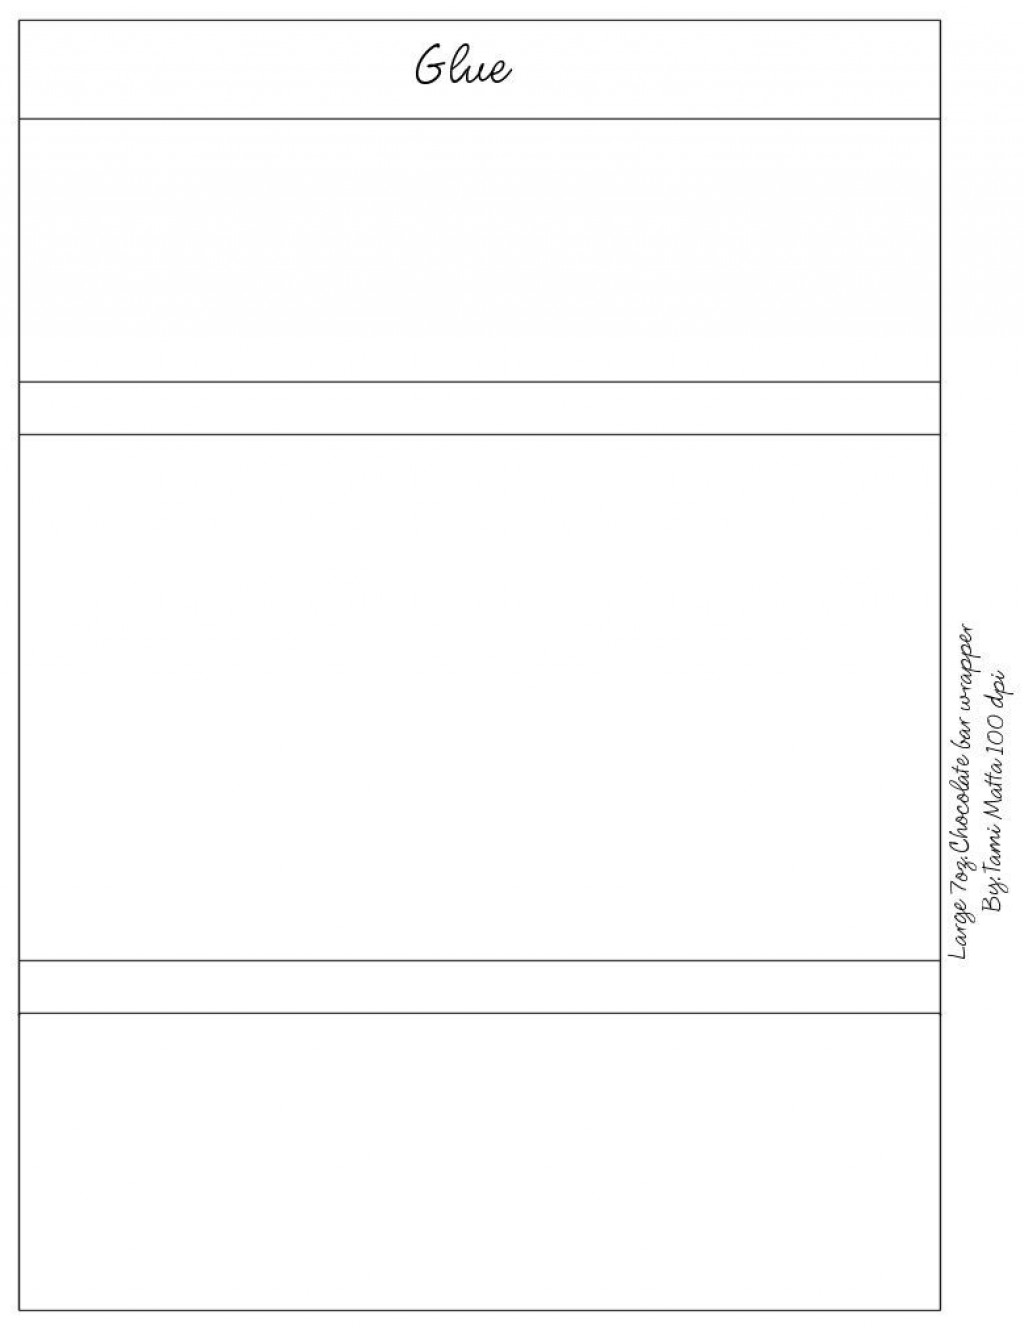 004 Amazing Free Candy Bar Wrapper Template Pdf Inspiration Large